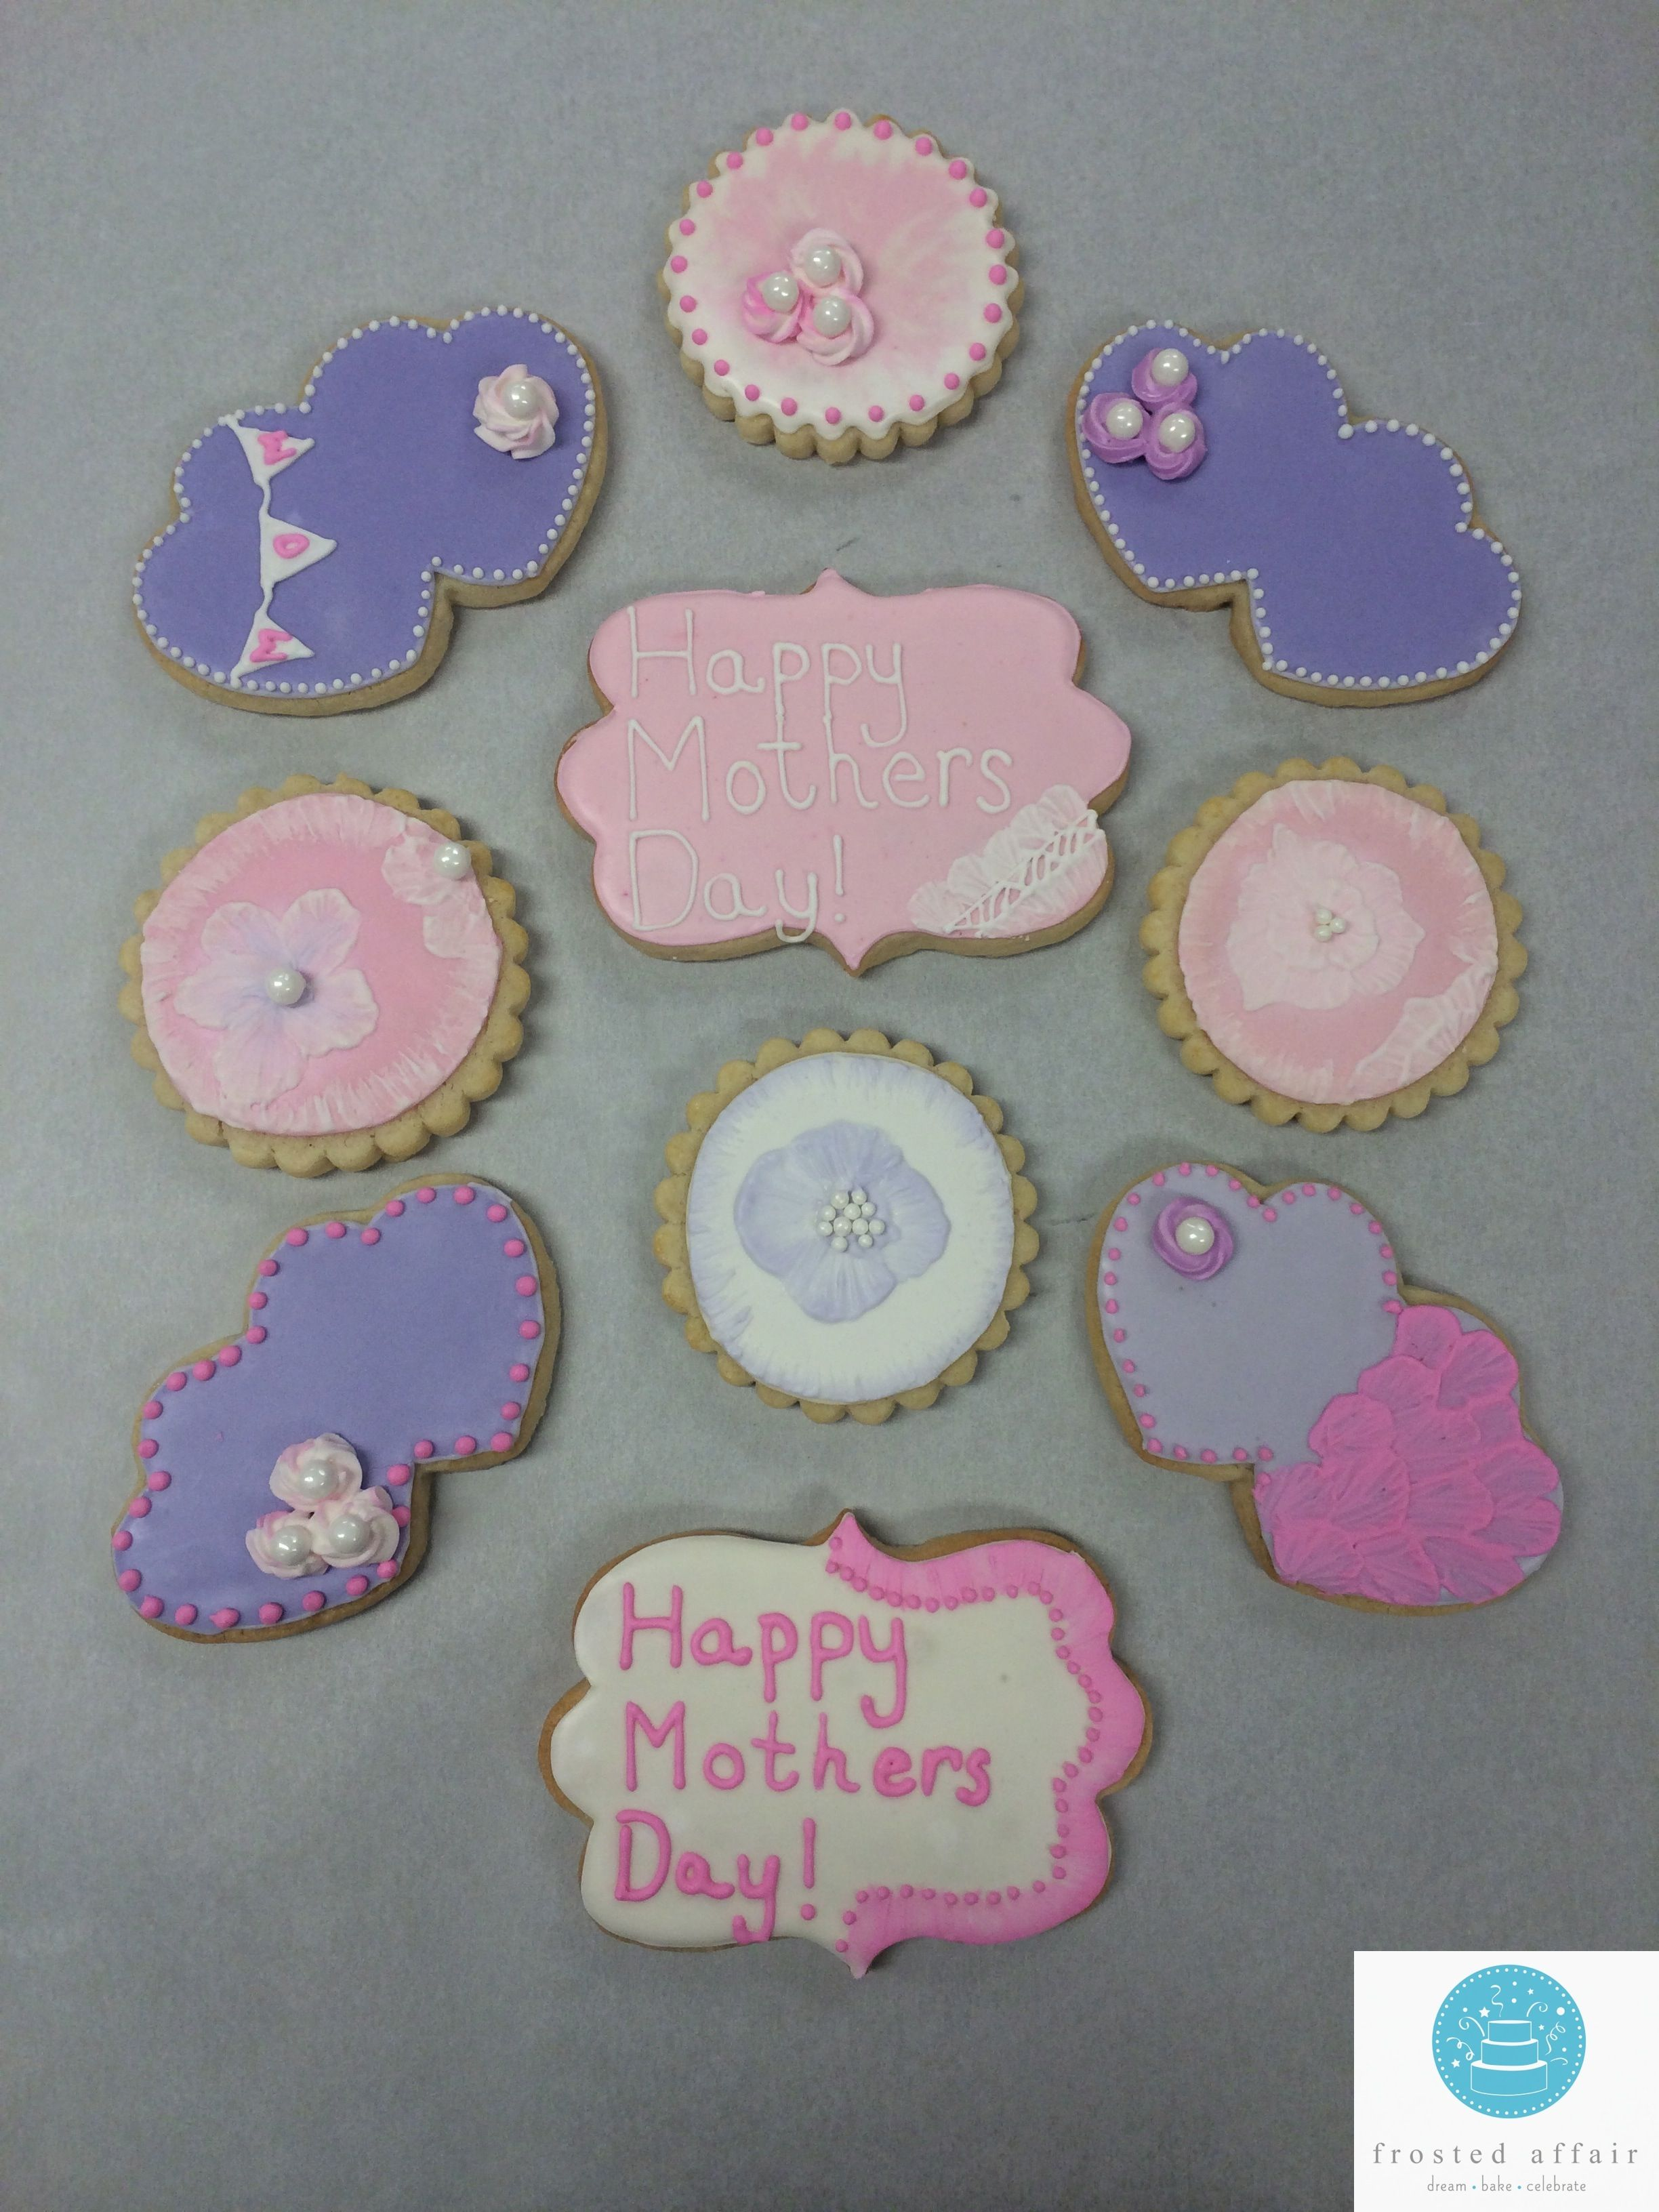 Pink and purple cookies for your sweet mother!